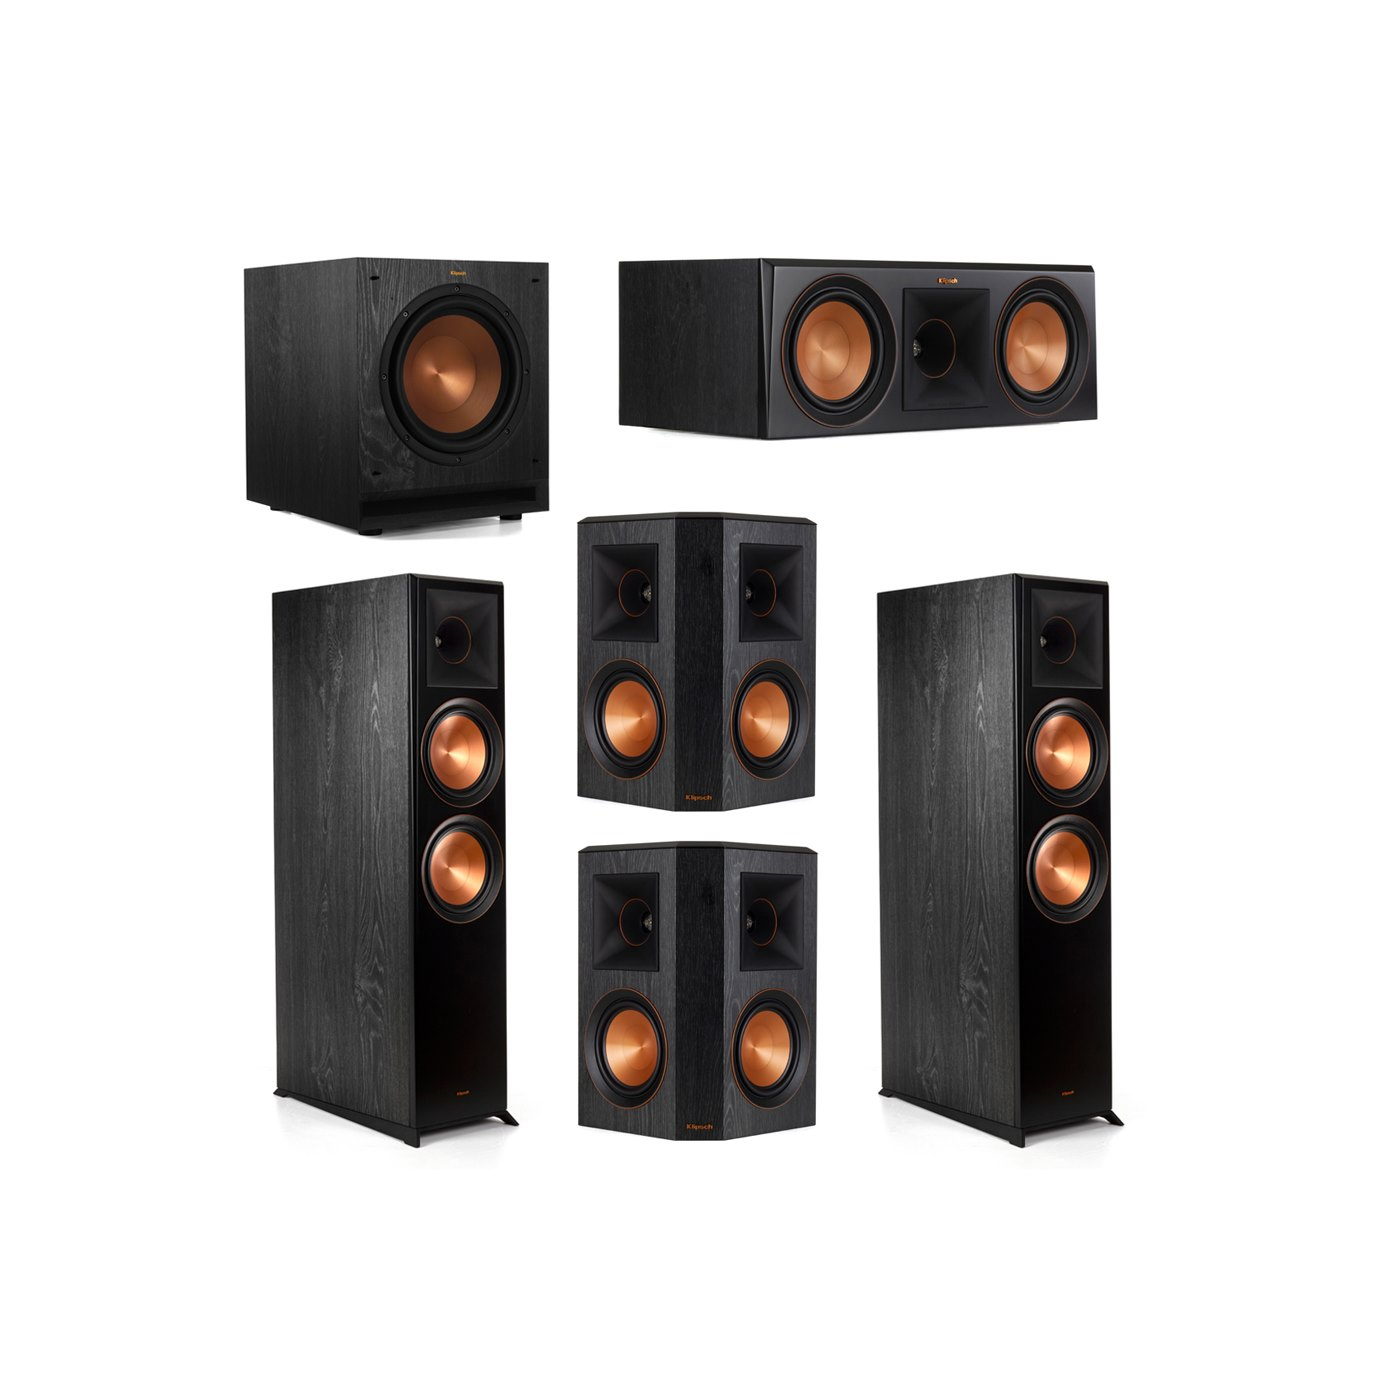 Klipsch 5.1.2 System - 2 RP-8060FA Dolby Atmos Speakers, 1 RP-600C, 2 RP-502S Speakers, 1 SPL-100